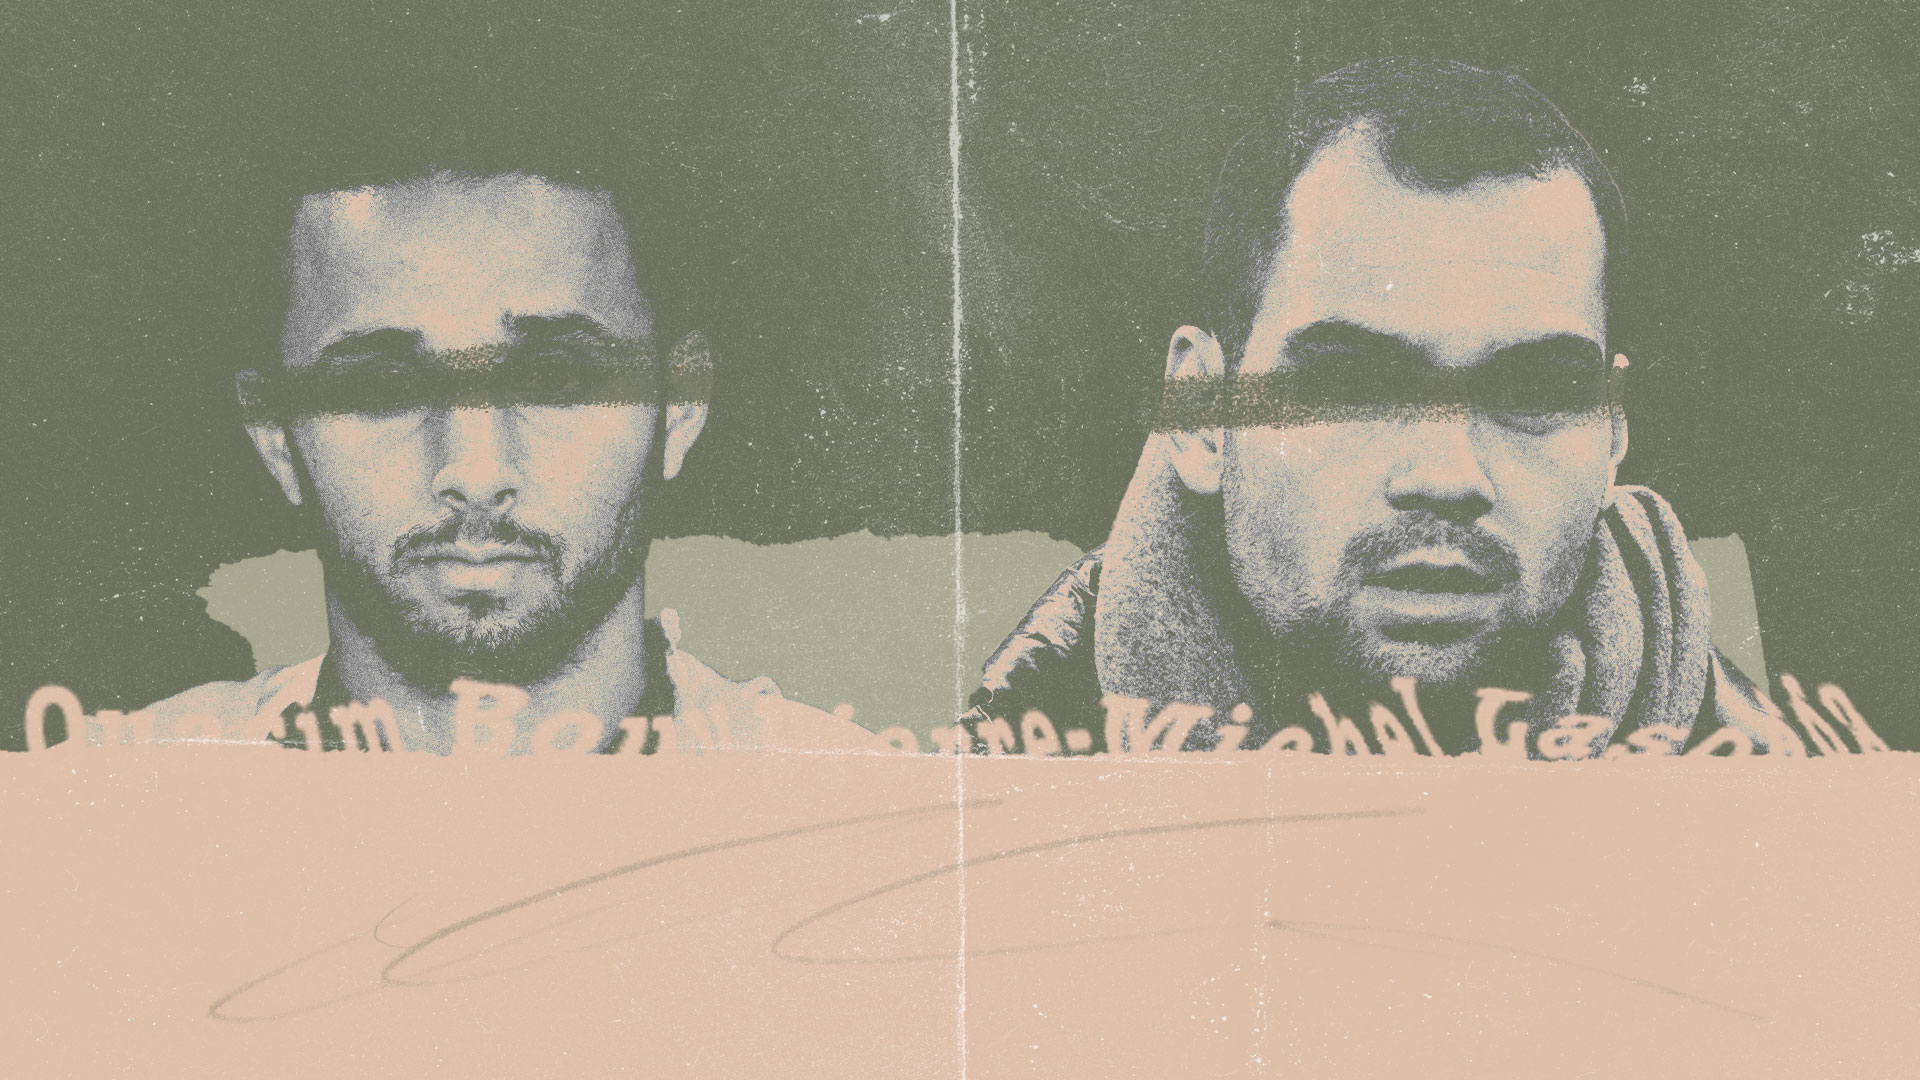 Ouasim Bouy and Pierre-Michel Lasogga photocopied to look like missing persons or something